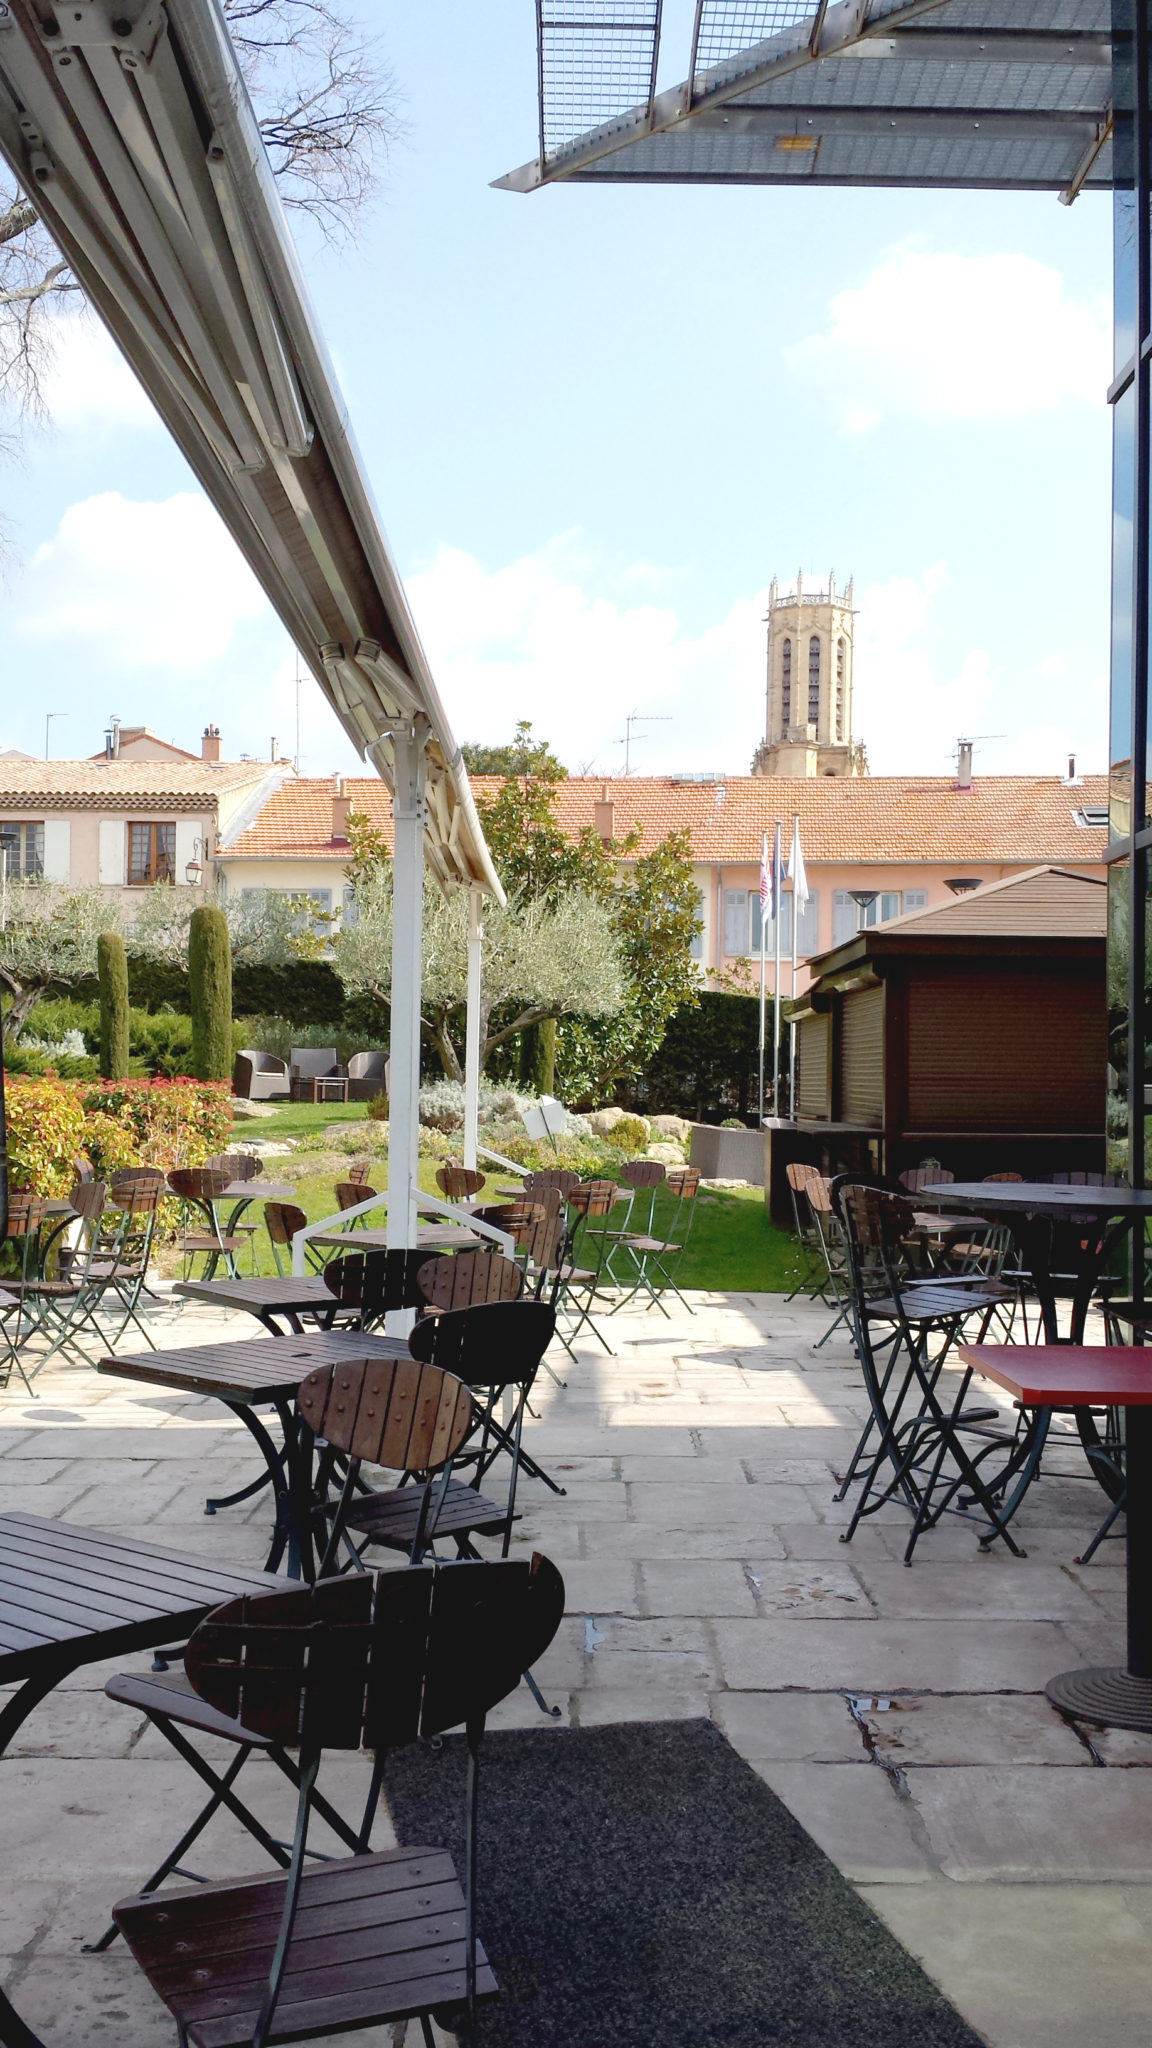 Journee_cocooning_aixenprovence_spa_thermes_sextius_terrasse_orangerie_2